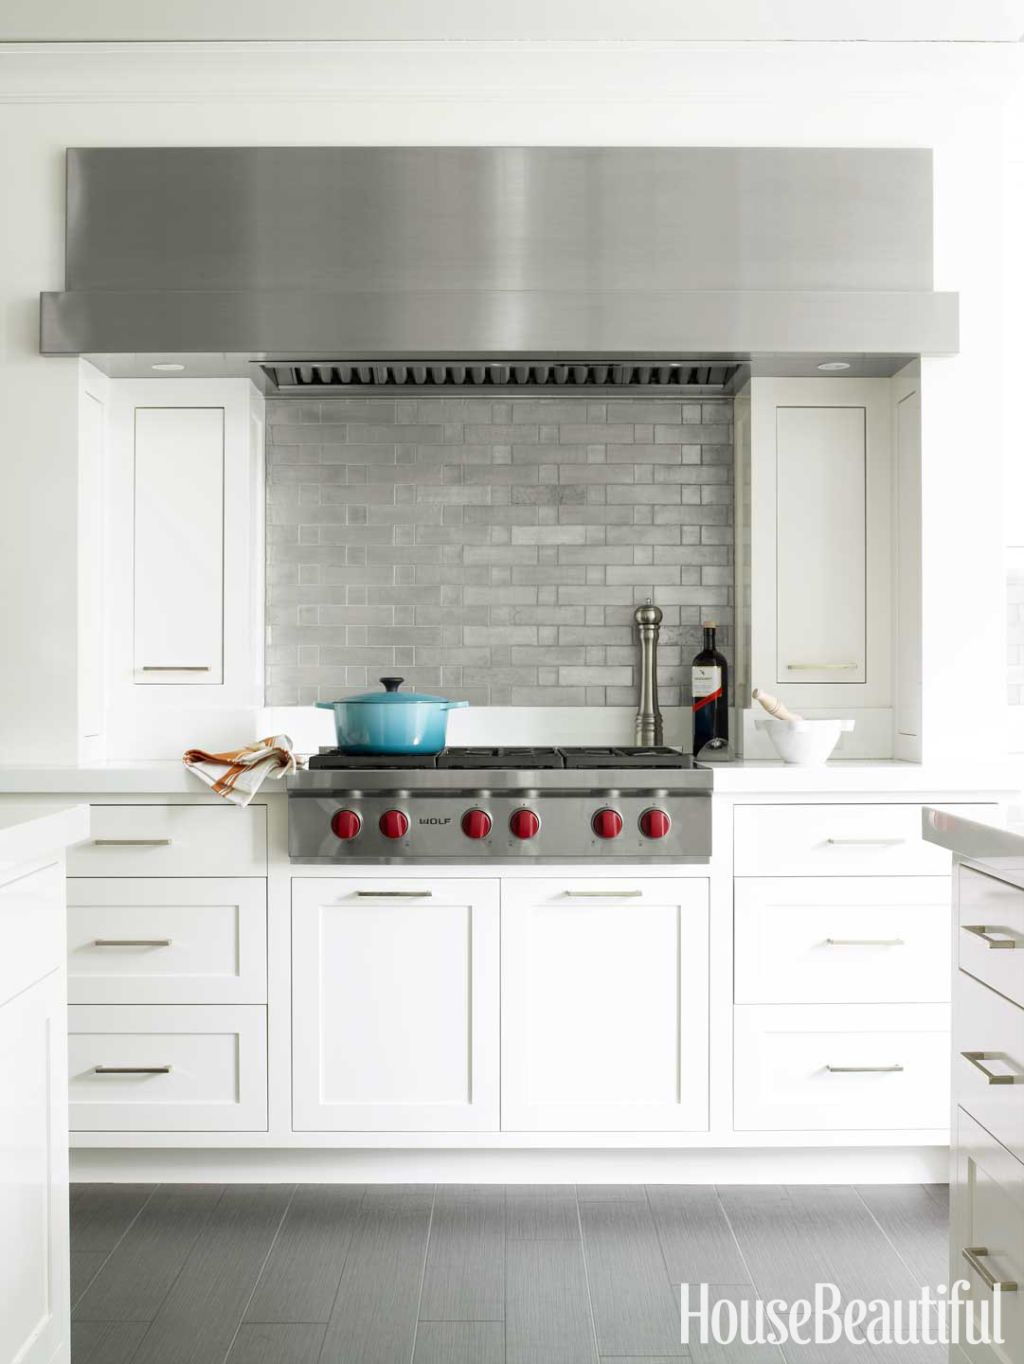 Minimalist modern clean kitchen remodel. Modern kitchen. I have a love of modern homes, my friend Amin C Khoury of Palm Beach re-inspired my love of modern architecture, and I've since discovered so many amazing finds on Pinterest and online.